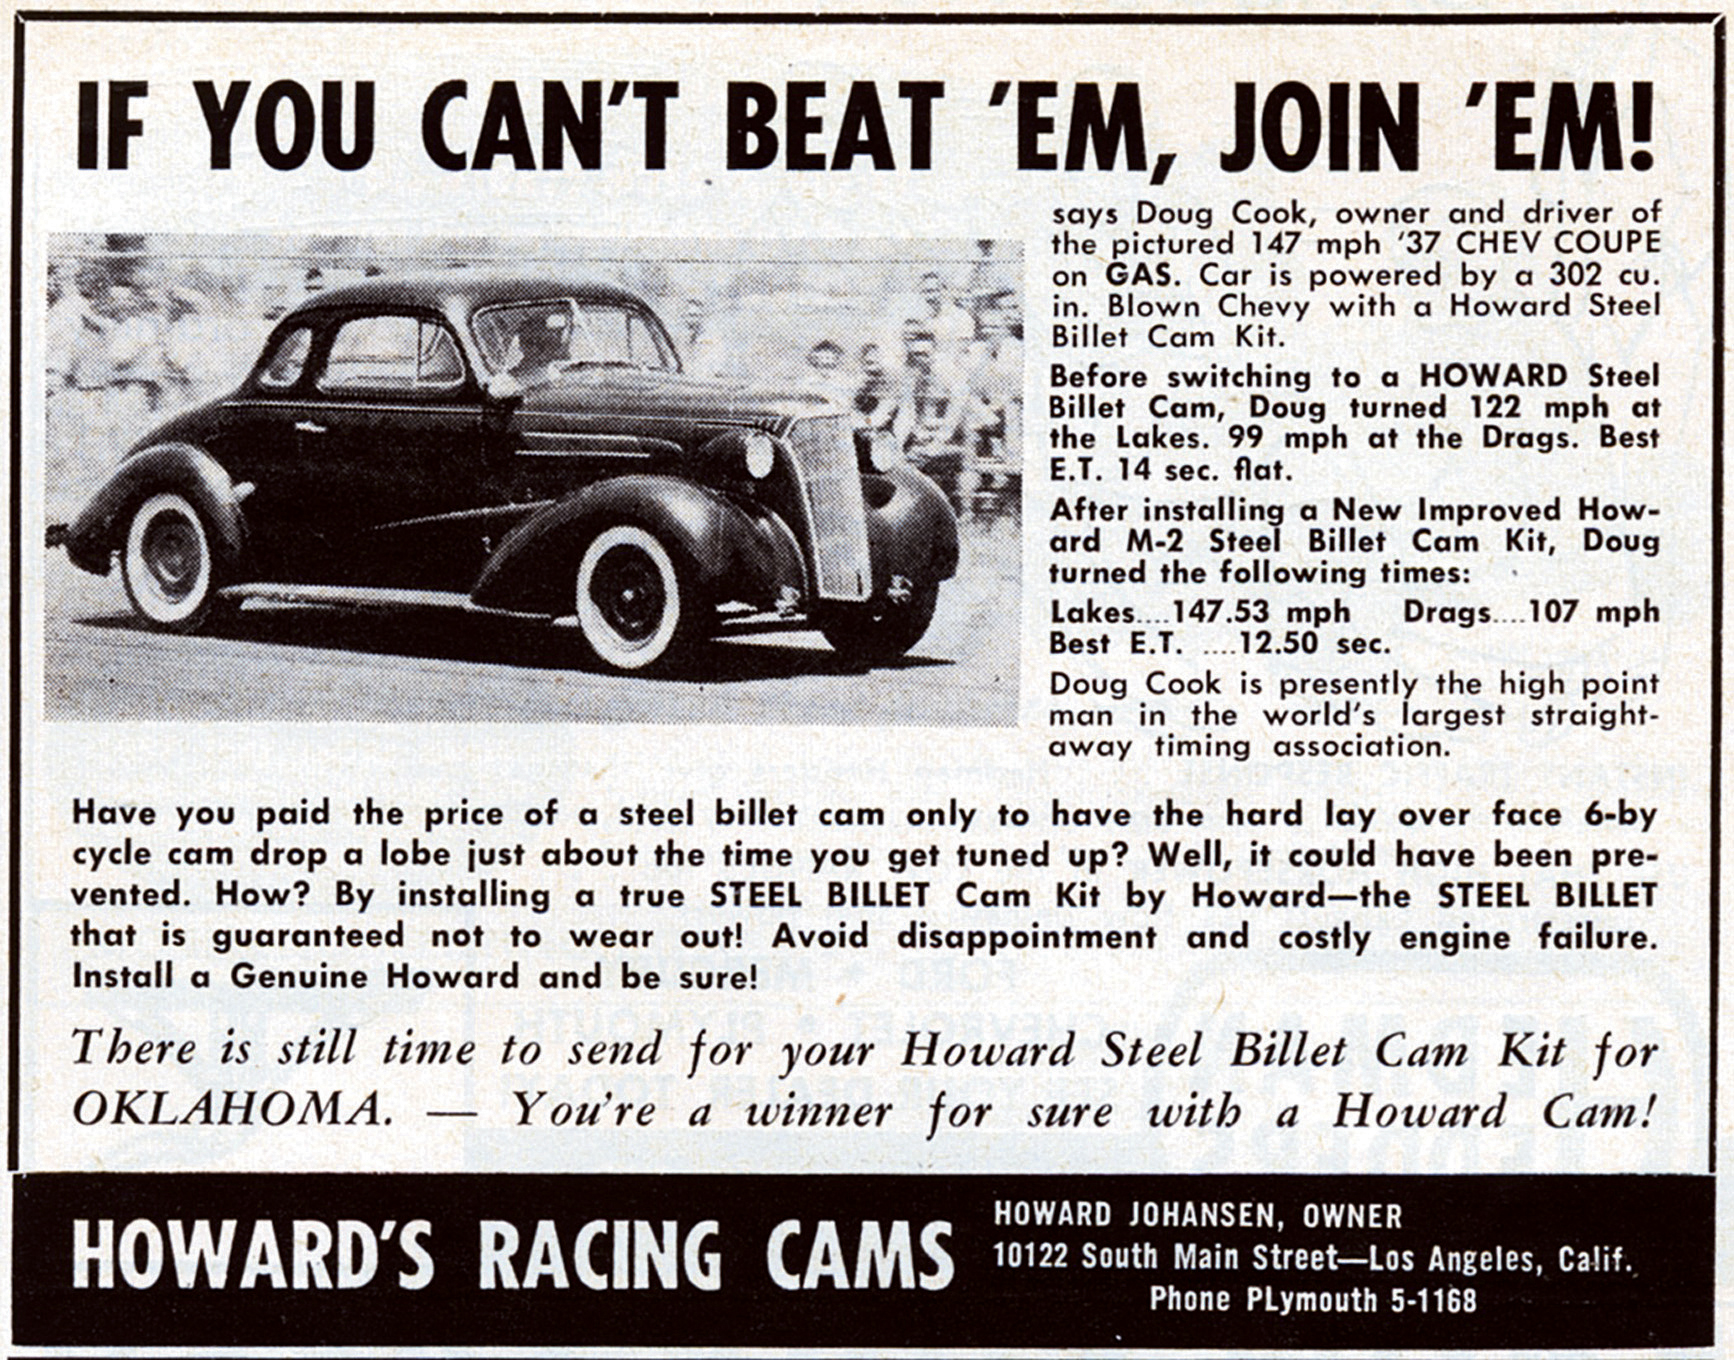 Here's the ad that Mr. Isky credits for escalating the war with Howard's and Engle Cams, both big backers of gassers. Johansen's headline trumpeted Doug Cook's recent defection from Iskenderian. Sept. '58 Hot Rod